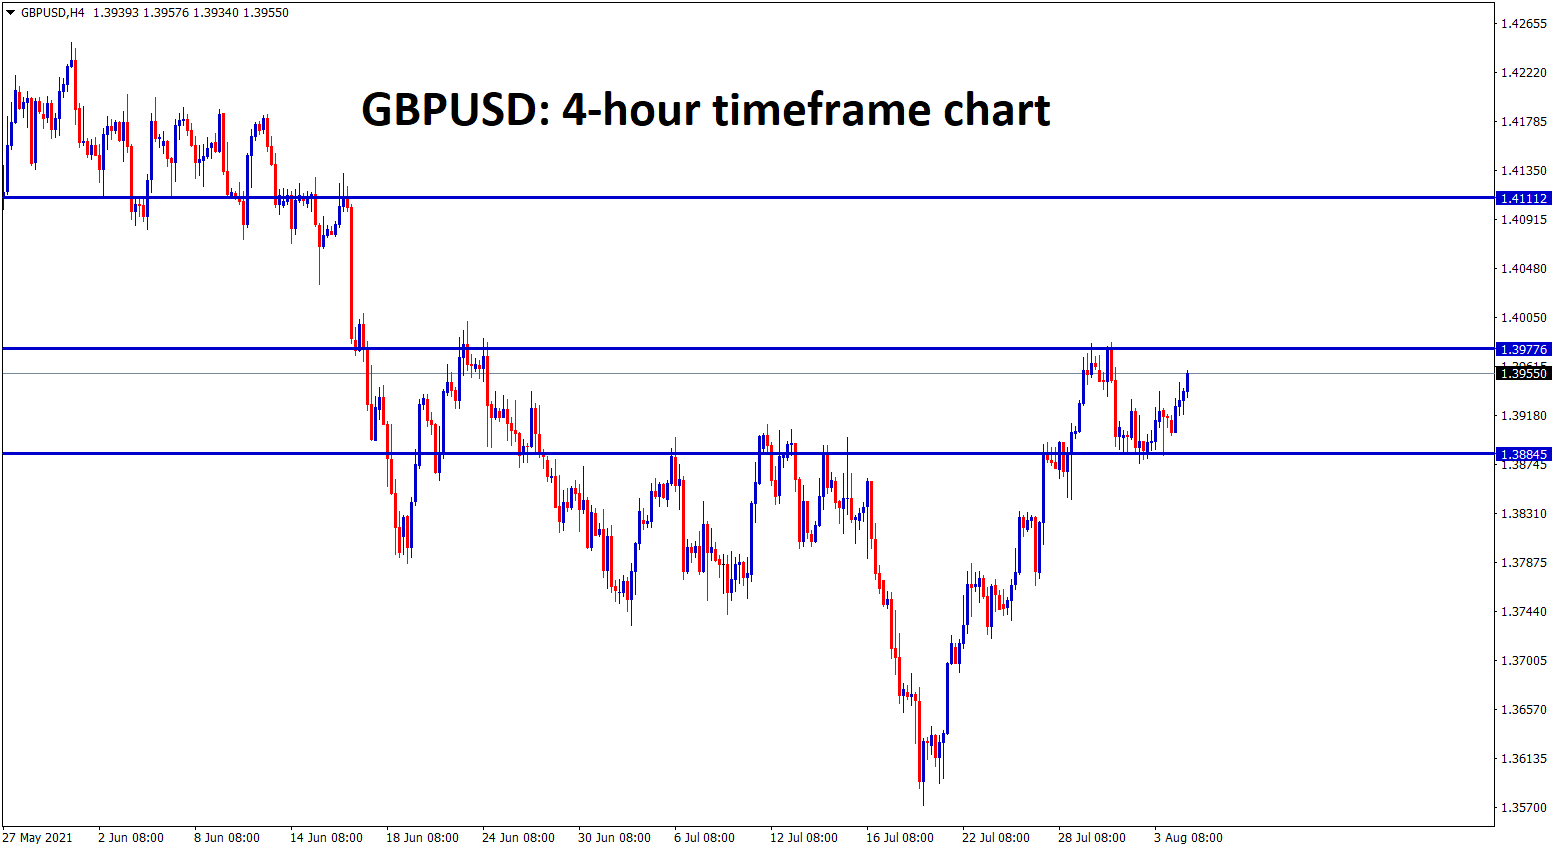 GBPUSD is rising up again to the recent high